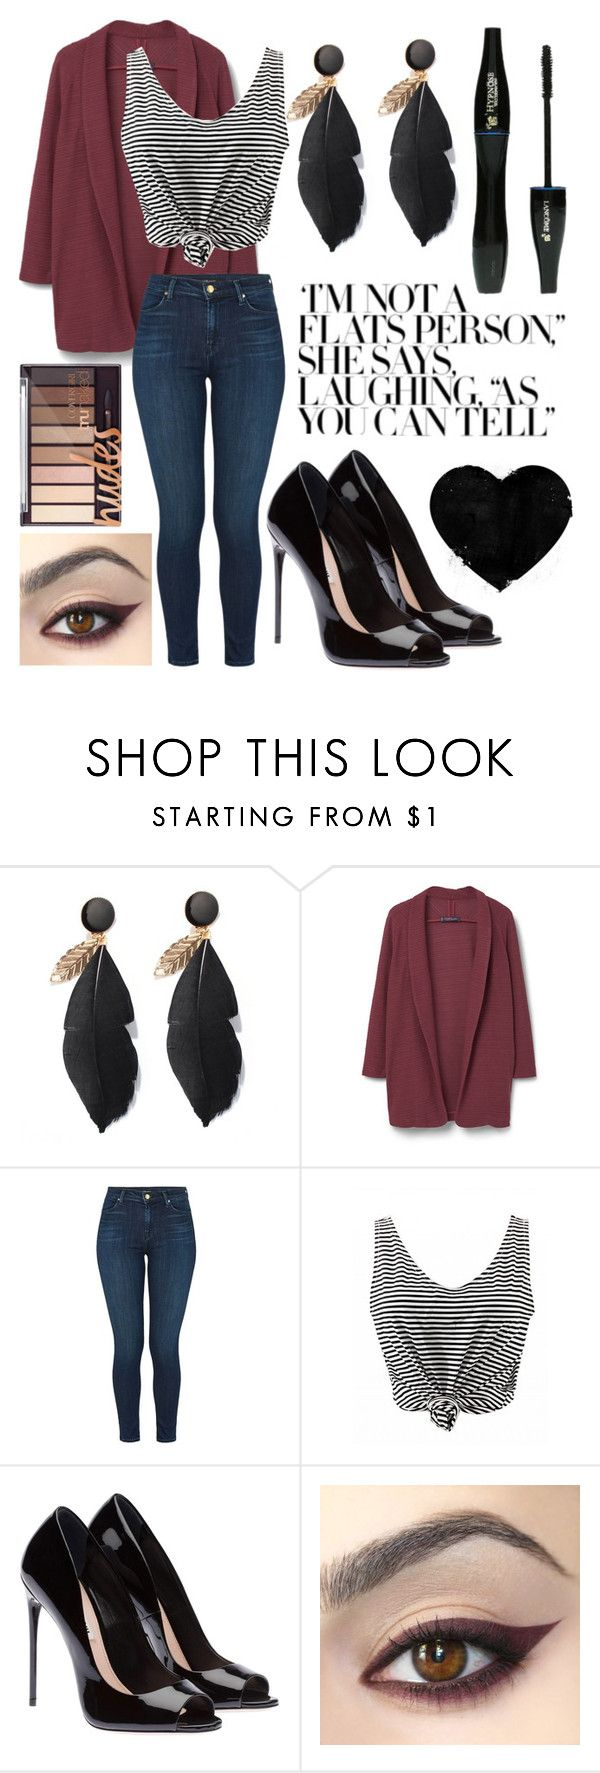 """""""Thirty"""" by haileyperryman ❤ liked on Polyvore featuring Violeta by Mango, J Brand and Lancôme"""